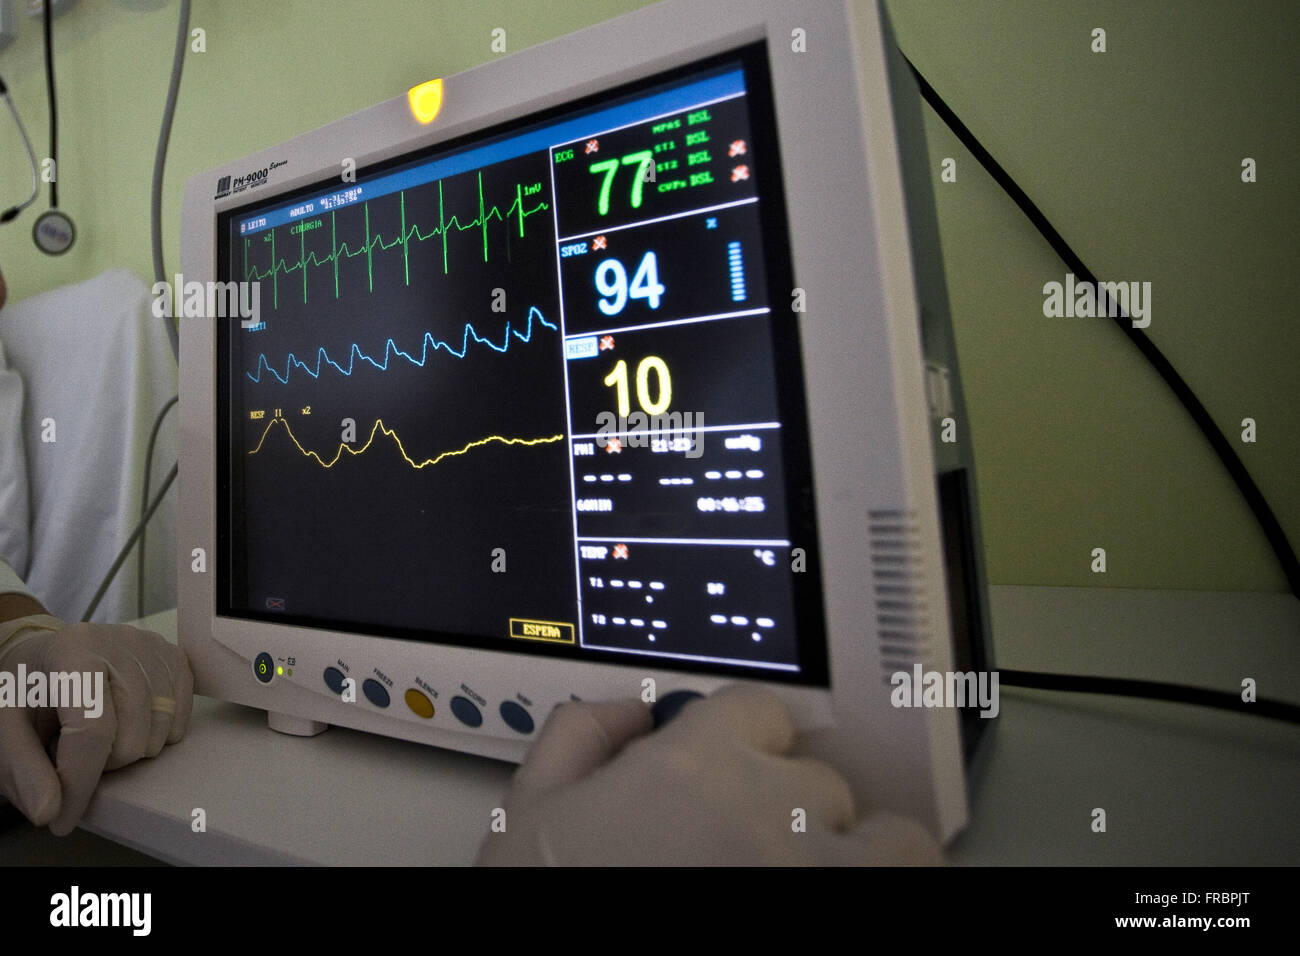 Cardiac Monitor Stock Photos & Cardiac Monitor Stock Images - Alamy